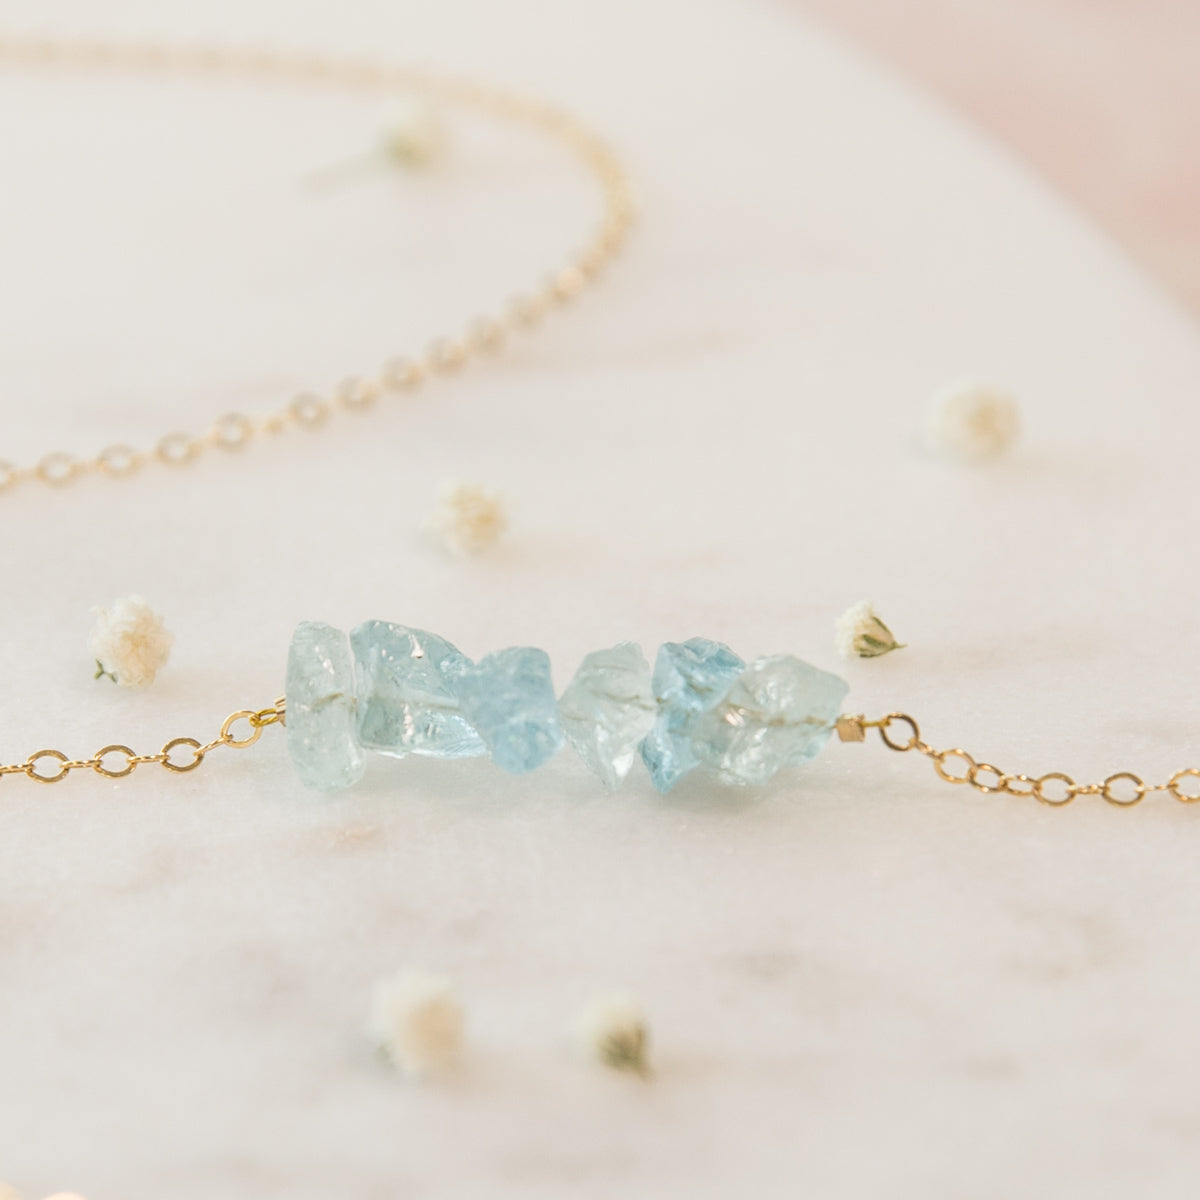 Raw Aquamarine Necklace, Raw Crystal Necklace, Raw Gemstone Necklace, Raw Crystal Jewelry, Aquamarine Necklace, Aquamarine Row Necklace,Something Blue, Something Blue For Wedding, Wedding Jewelry, Bridal Party Necklace, Dainty Necklace, Mermaid Necklace, Aquamarine Bar Necklace, Gemstone Necklace, Liz.Beth Jewelry Co.